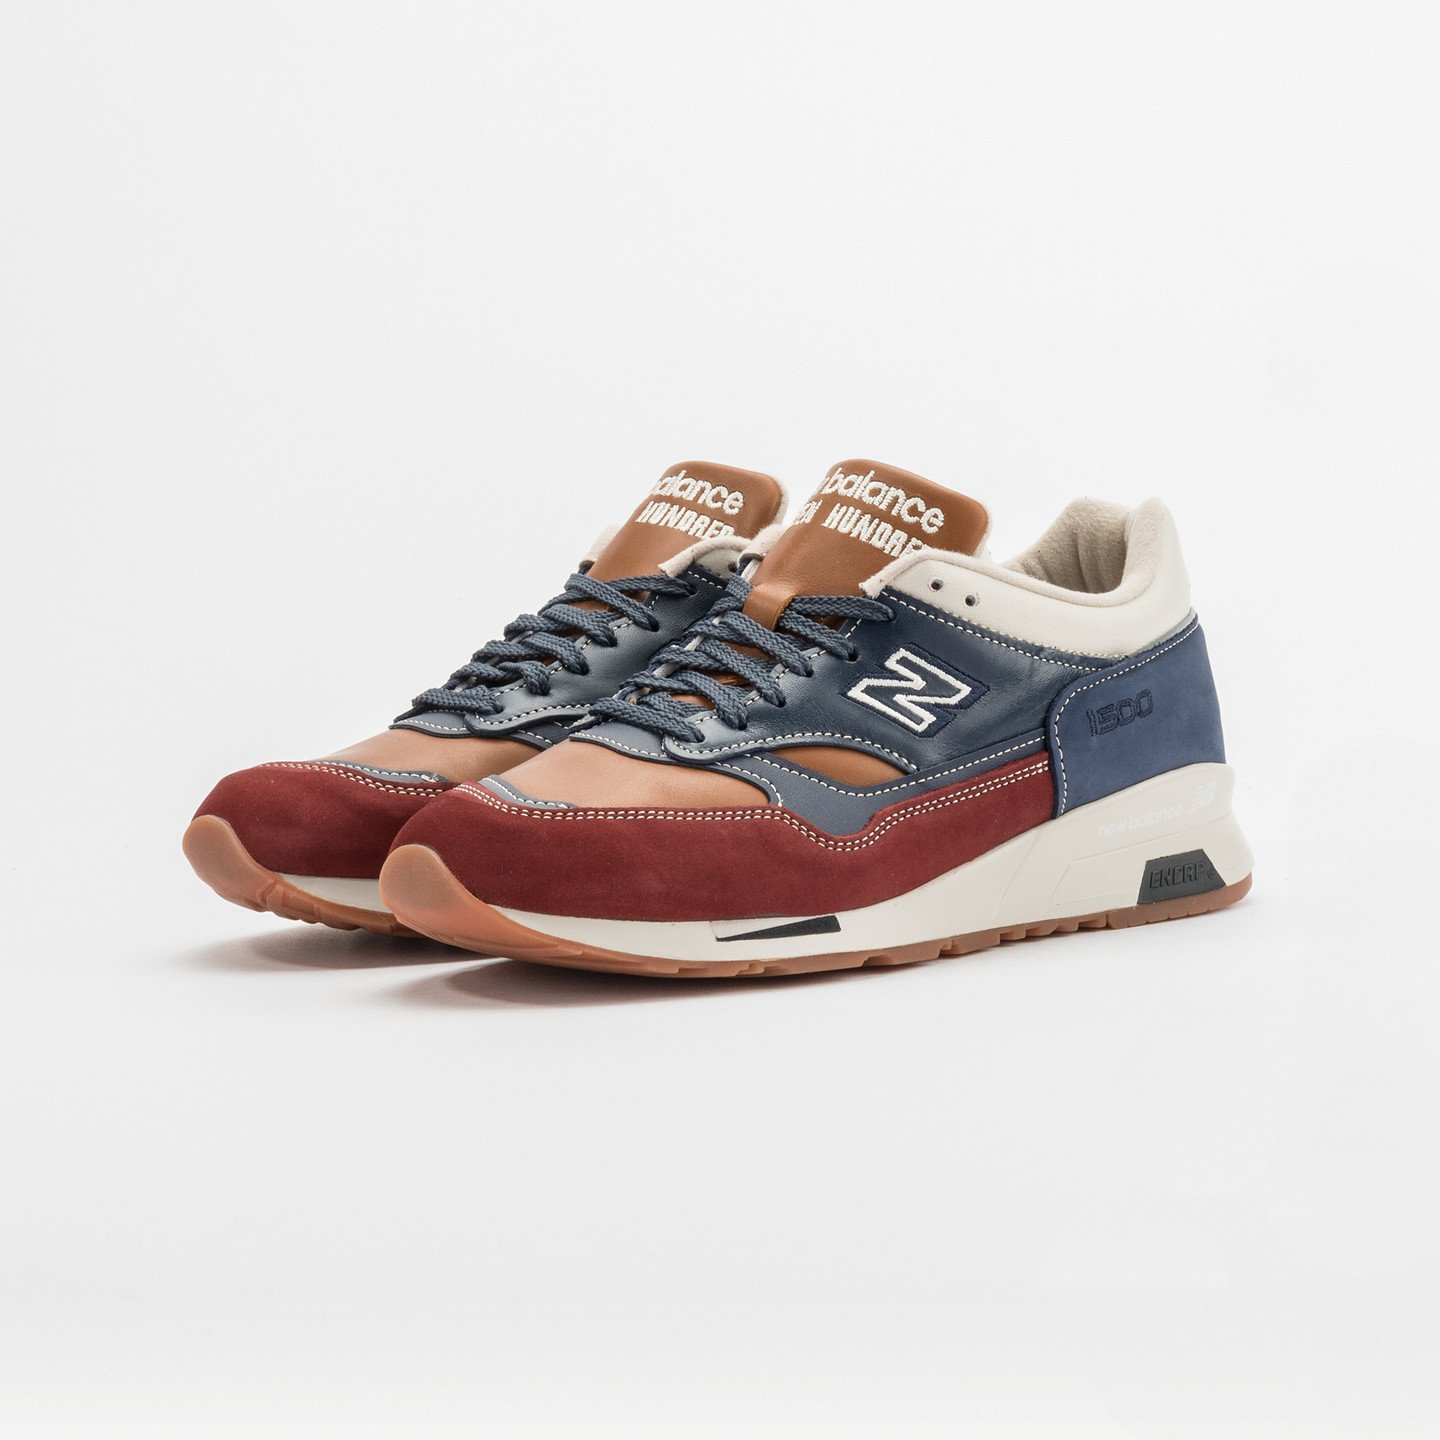 New Balance M1500 MGC - Made in England Navy / Bordeaux / Brown M1500MGC